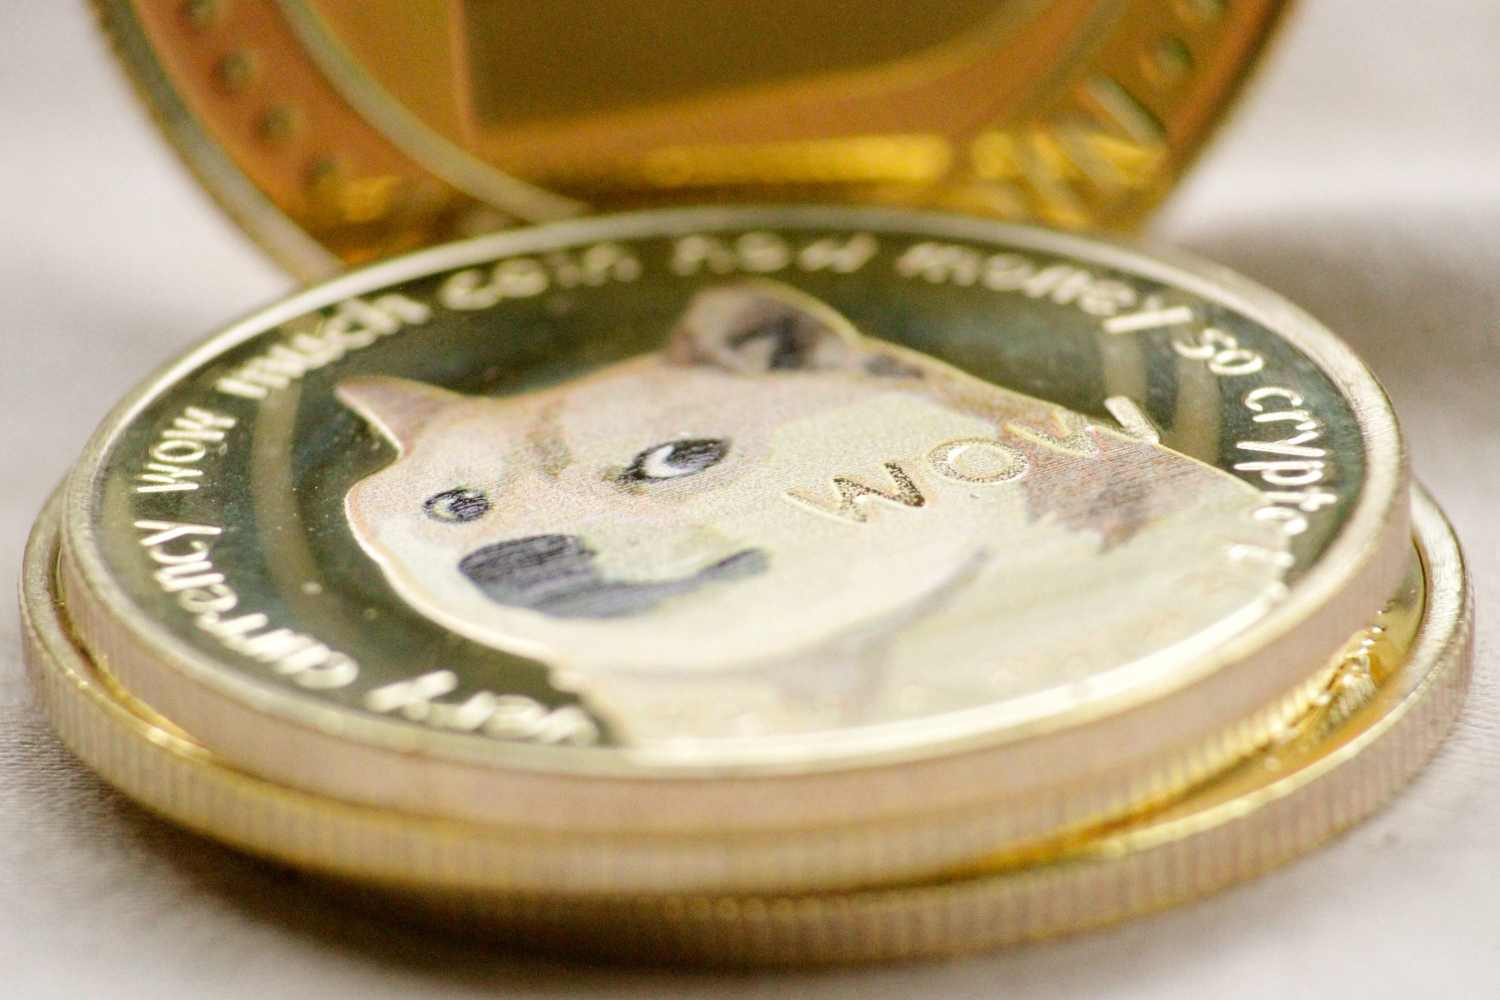 Dogecoin (DOGE) Rose by 366% in Q2, Outperforming the top 5 Cryptos